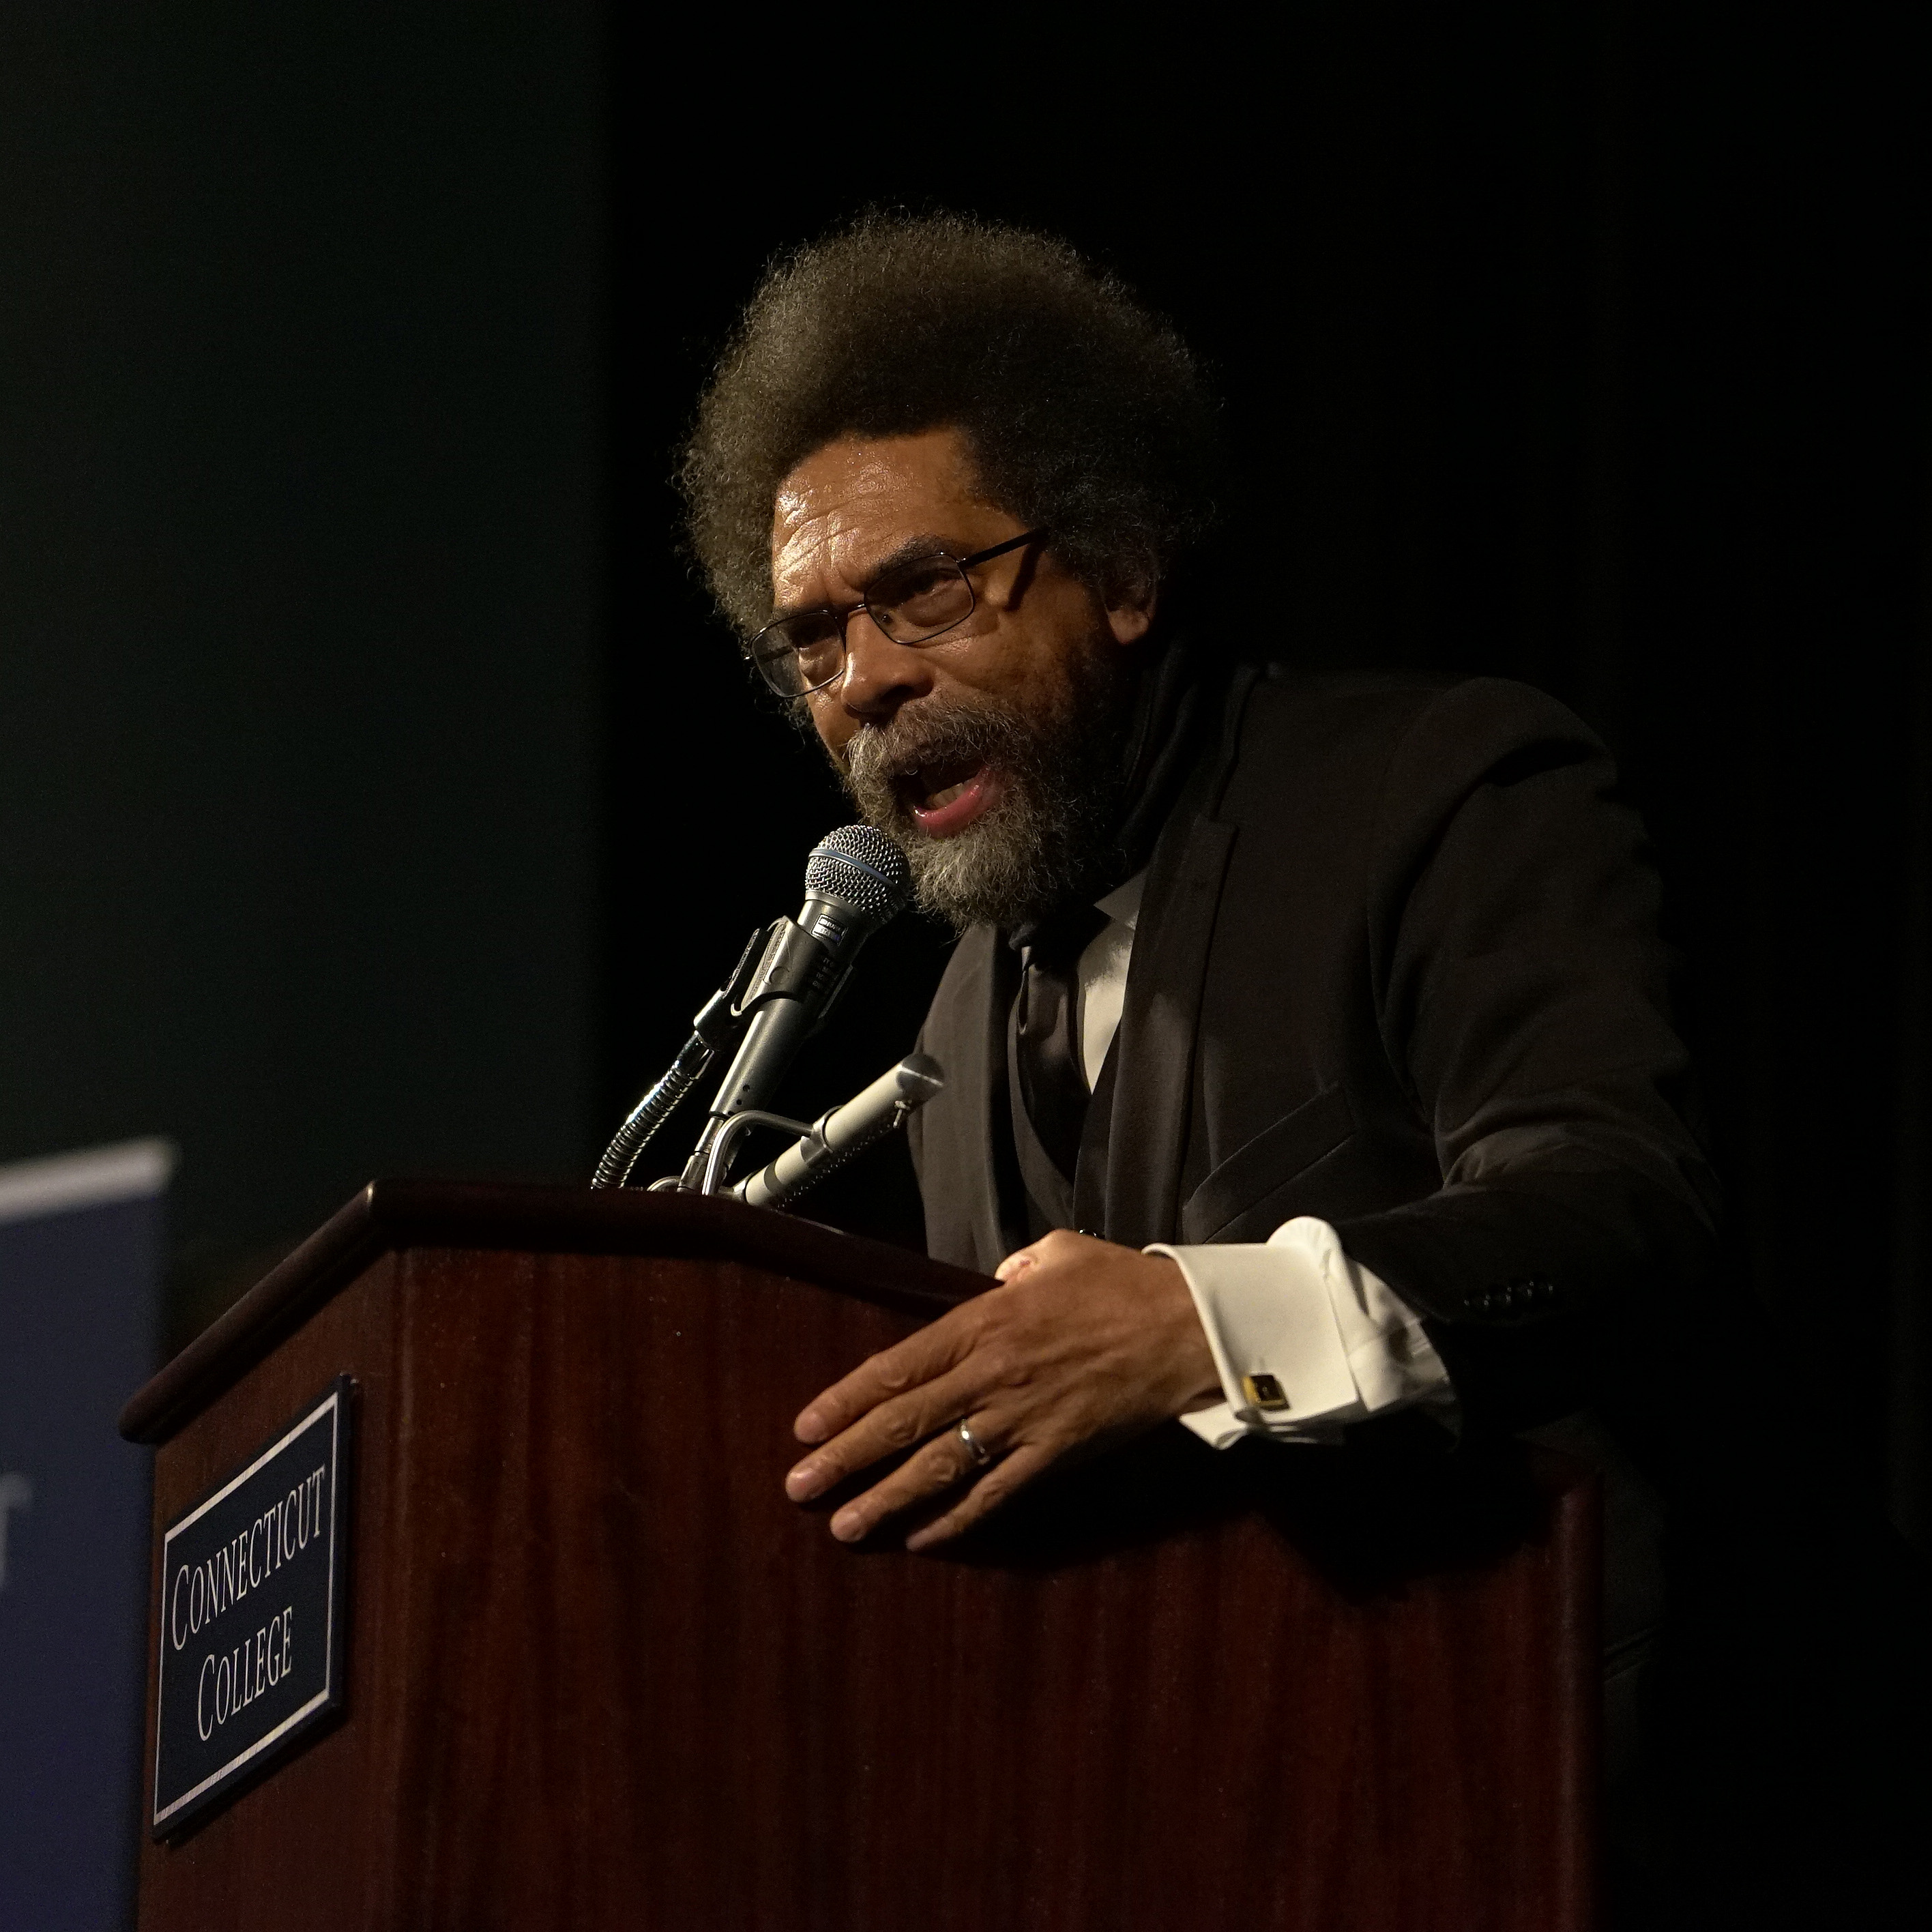 Cornel West addressed the campus community 10 years after presenting the keynote address at the CCSRE's inaugural event.